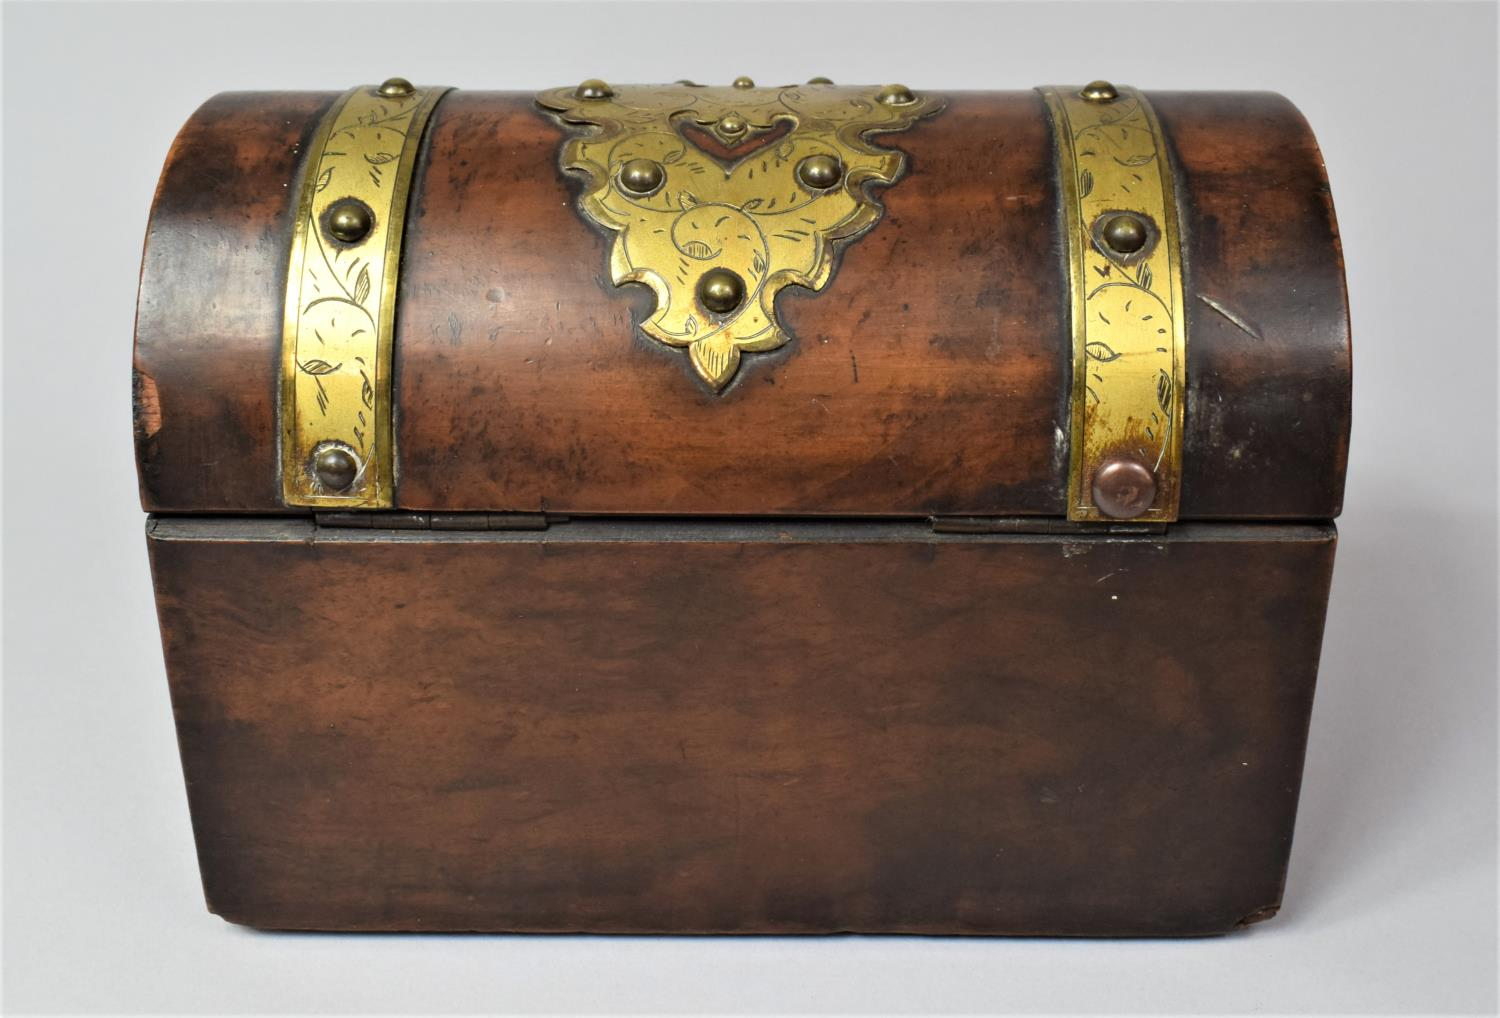 A Victorian Brass Mounted Burr Walnut, Dome Topped Casket with Hinged Lid, 20cm Wide - Image 5 of 5